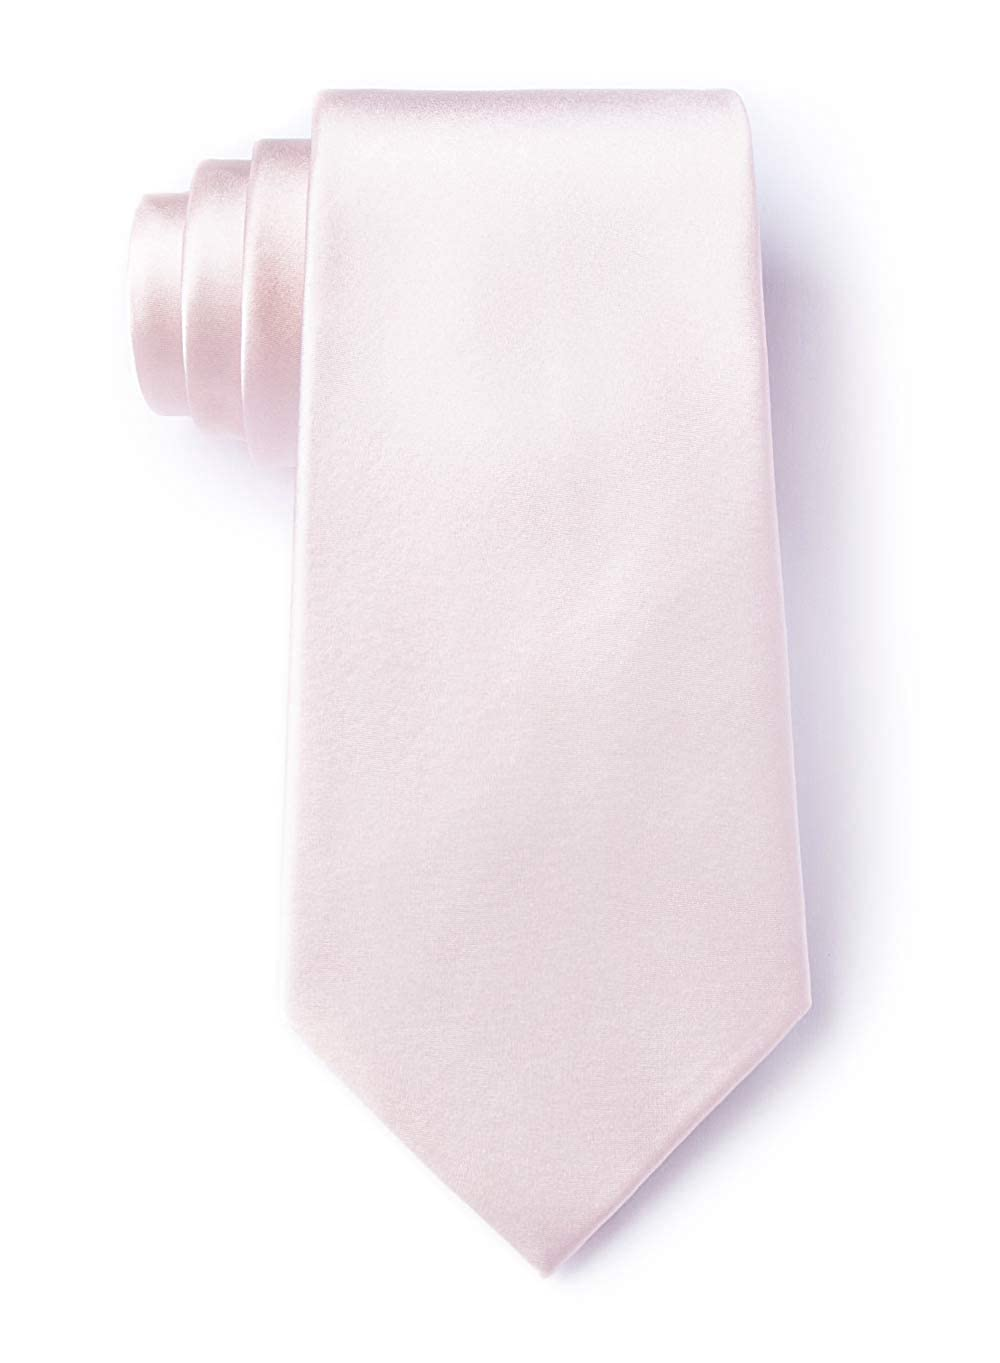 B00012PJYE 100% Silk Handmade Woven Tie Mens & Boys Necktie - 45 Colors - 4 Sizes Available 519%2BxNudz9L